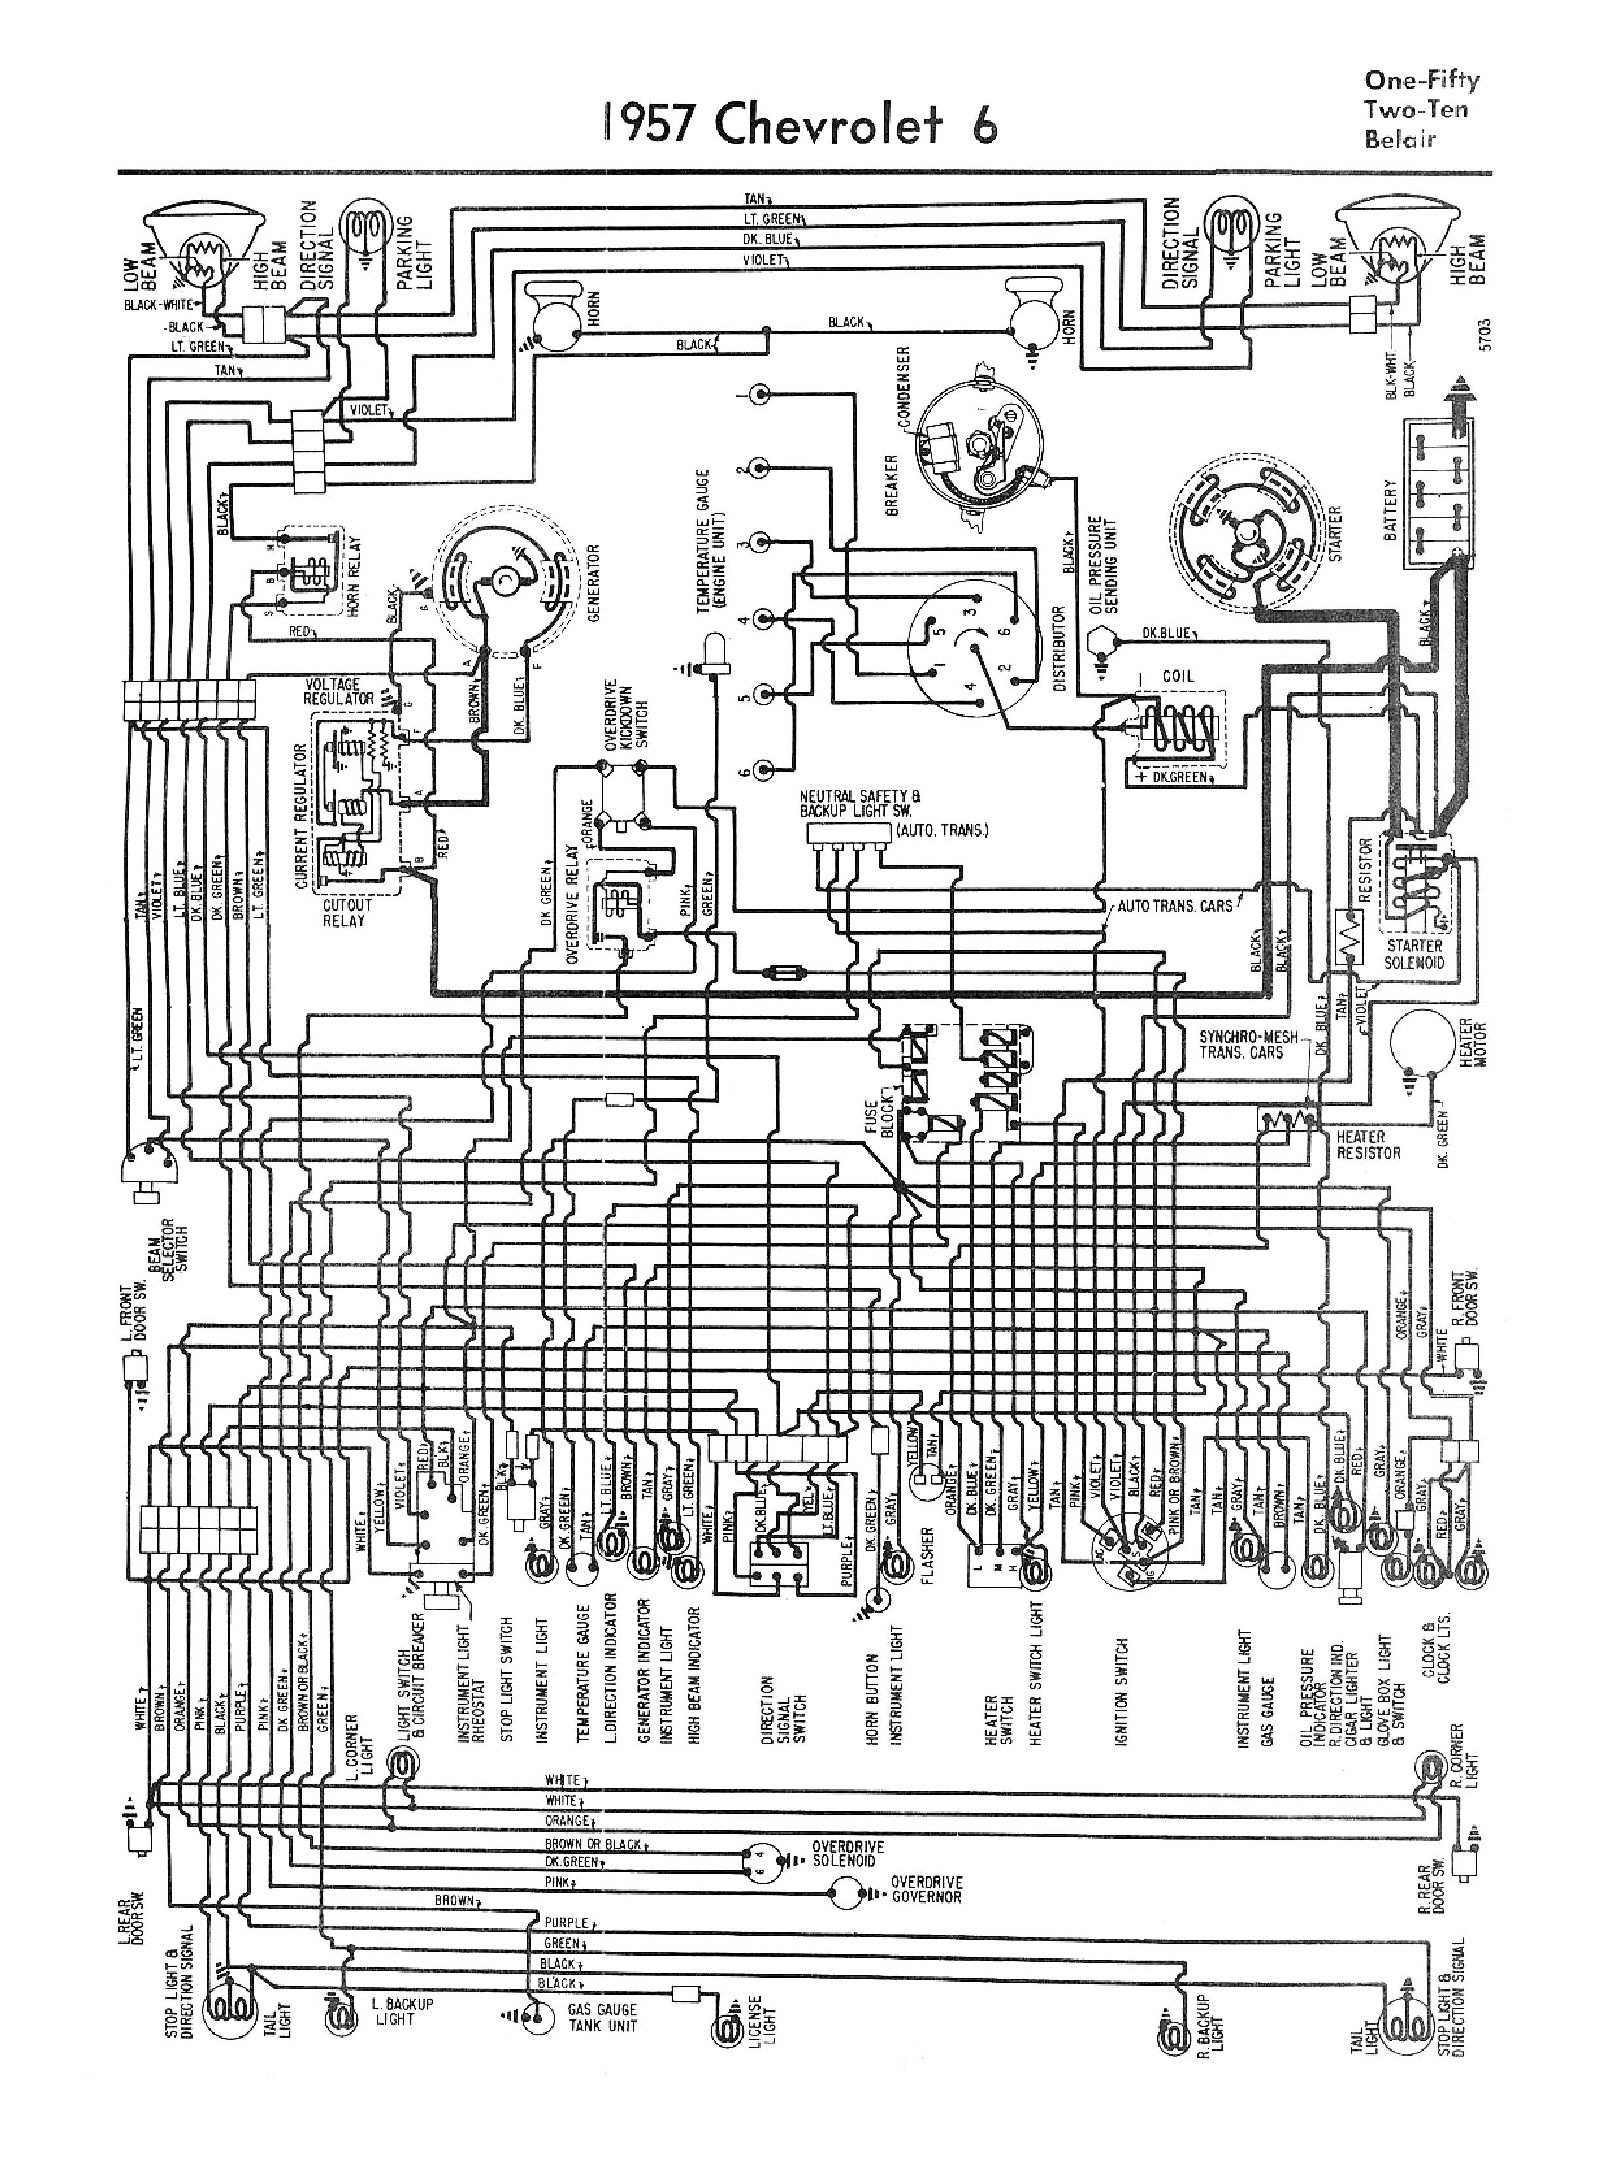 57v6 chevy wiring diagrams 1960 corvette wiring diagram at fashall.co